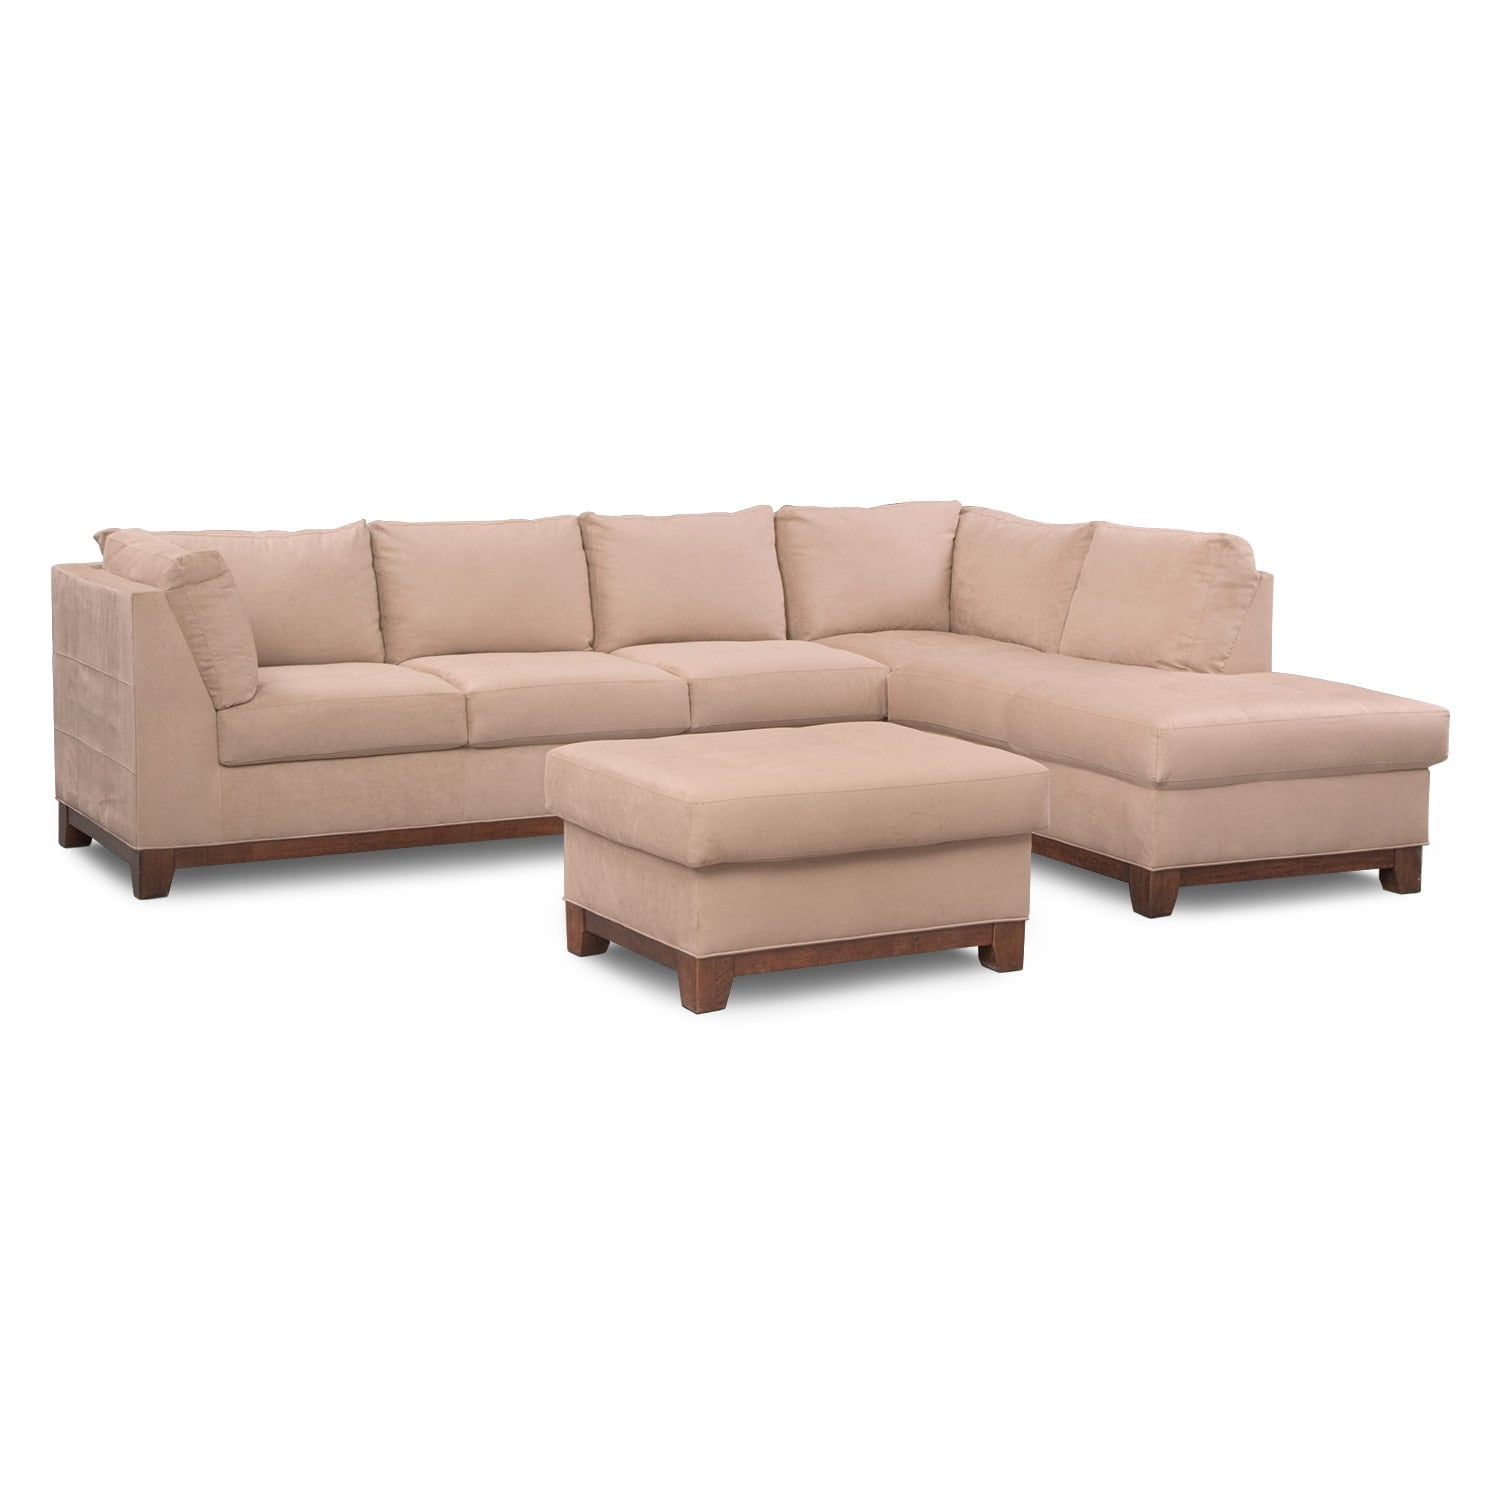 soho 2piece sectional with rightfacing chaise and ottoman cobblestone